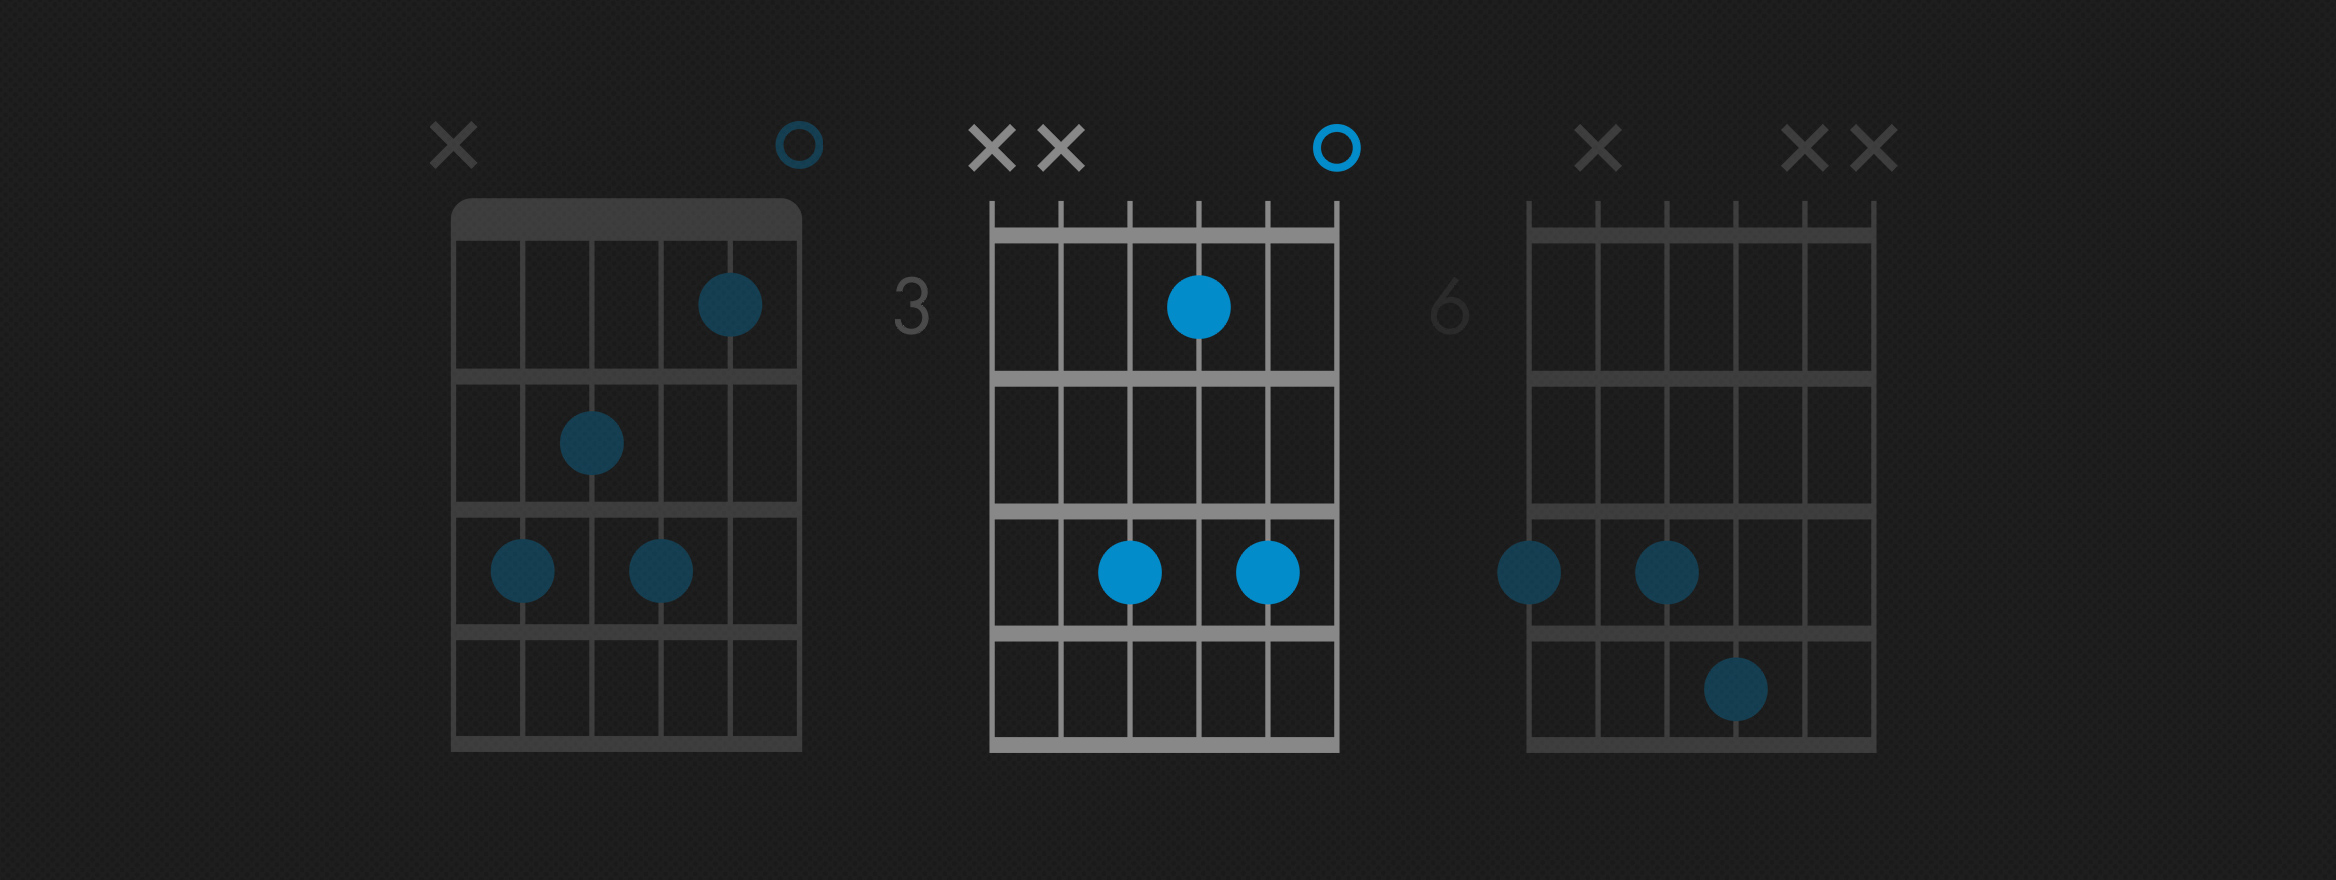 C dominant 15th Guitar Chord   How to Play C15 Chord   Fender Play